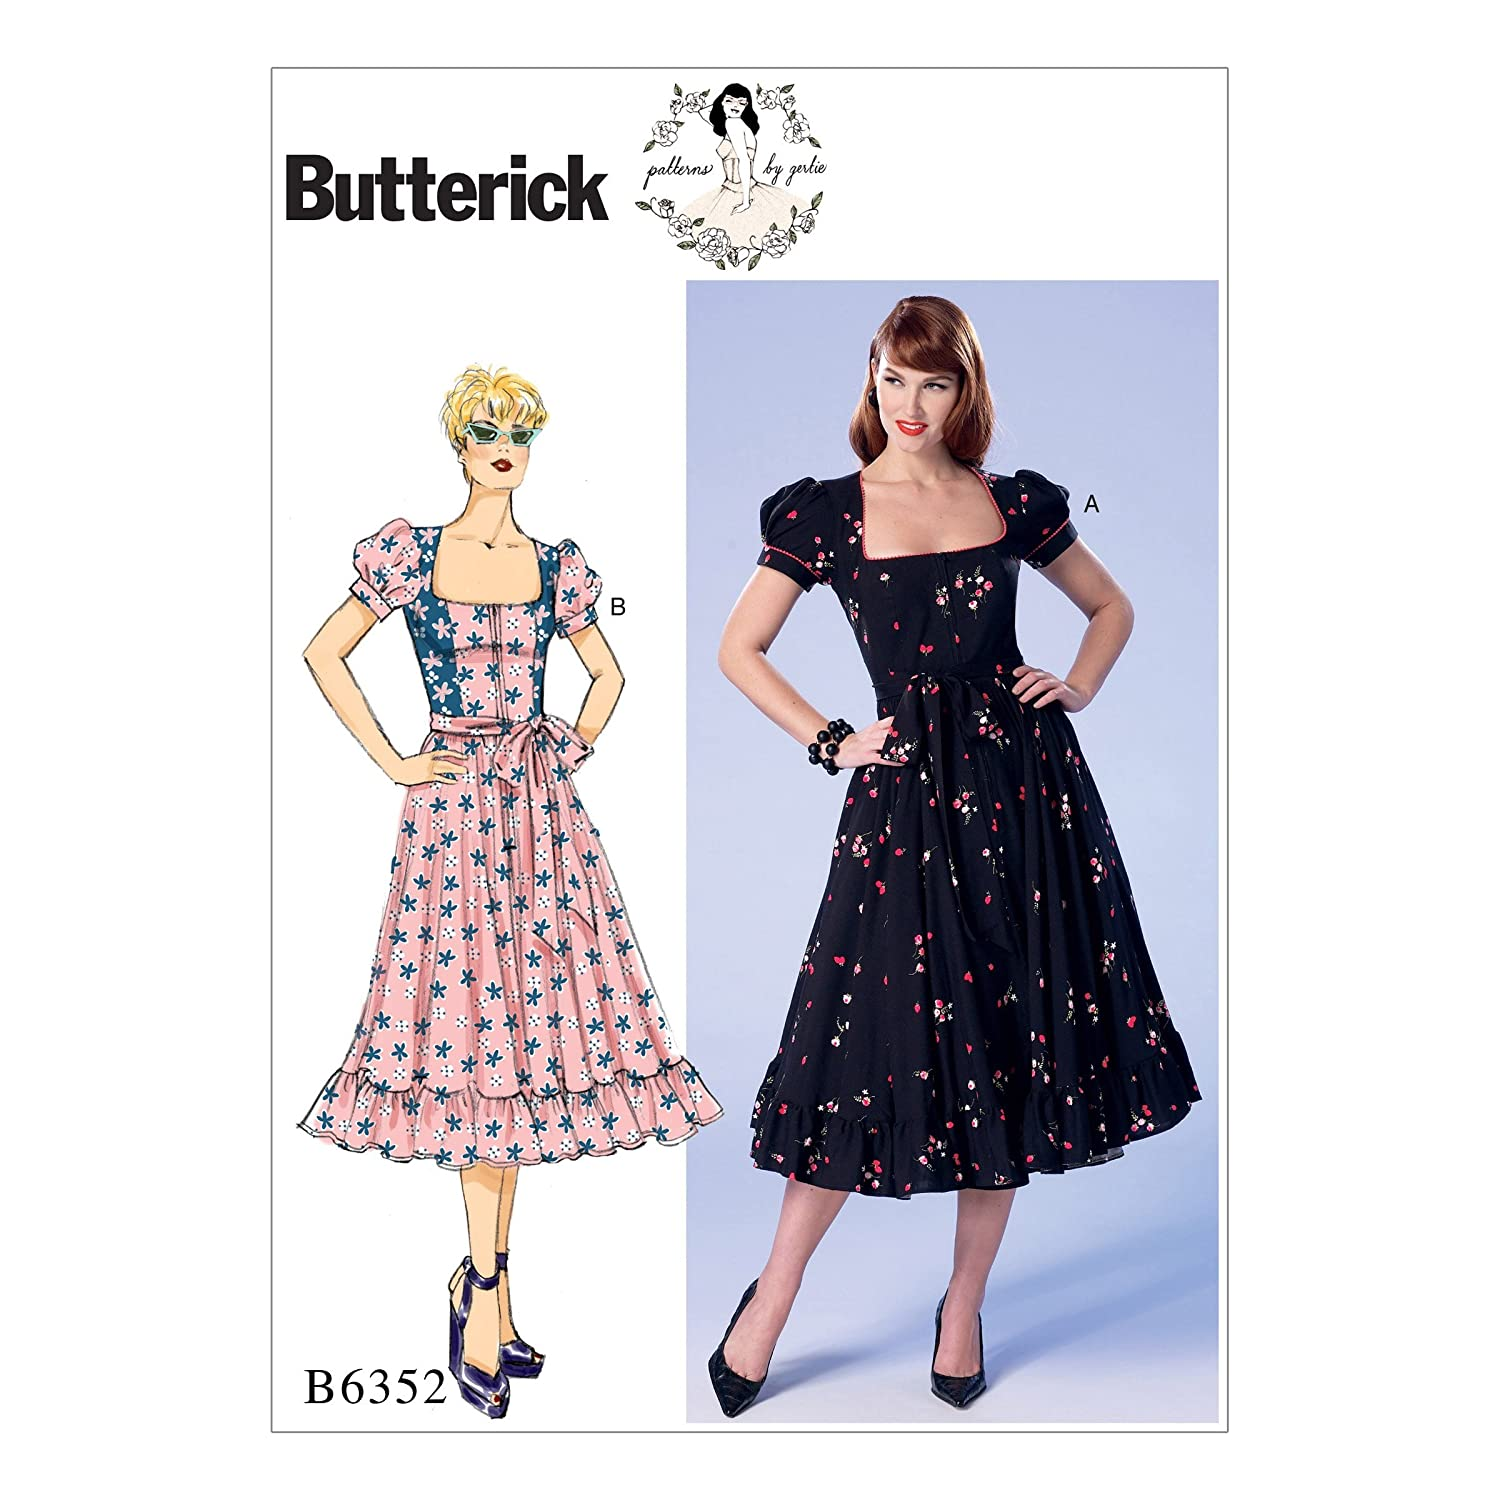 1950s Sewing Patterns | Swing and Wiggle Dresses, Skirts Petite Square-Neck Zip-Front Ruffled Dresses and Belt by Gertie (14-16-18-20-22) $8.52 AT vintagedancer.com